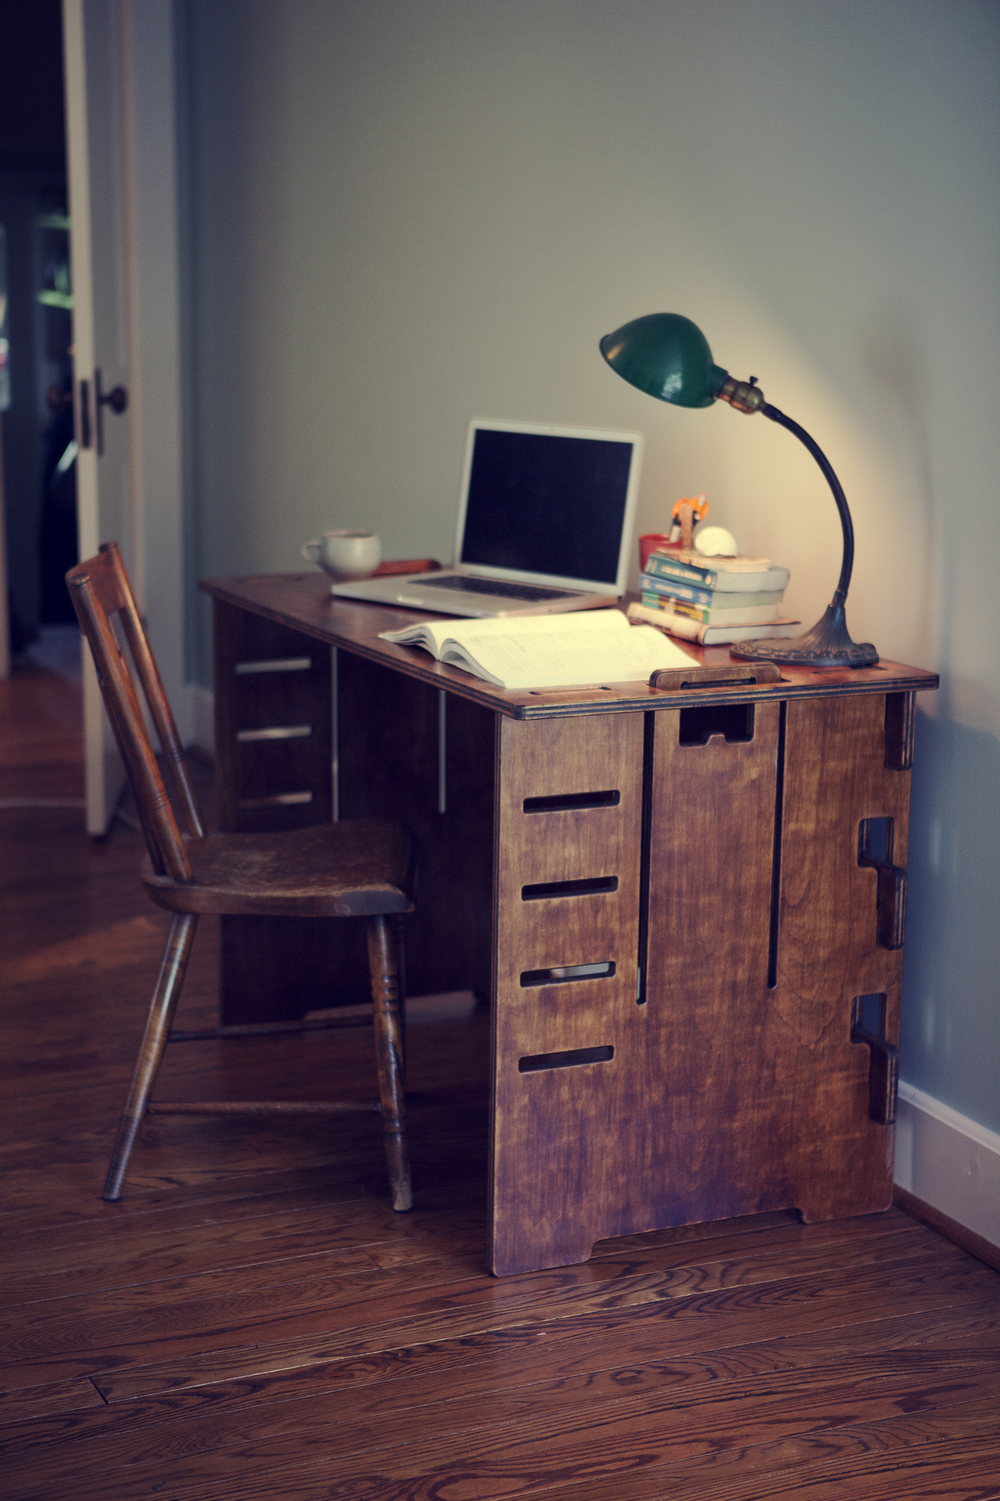 Image of Compy Desk 001